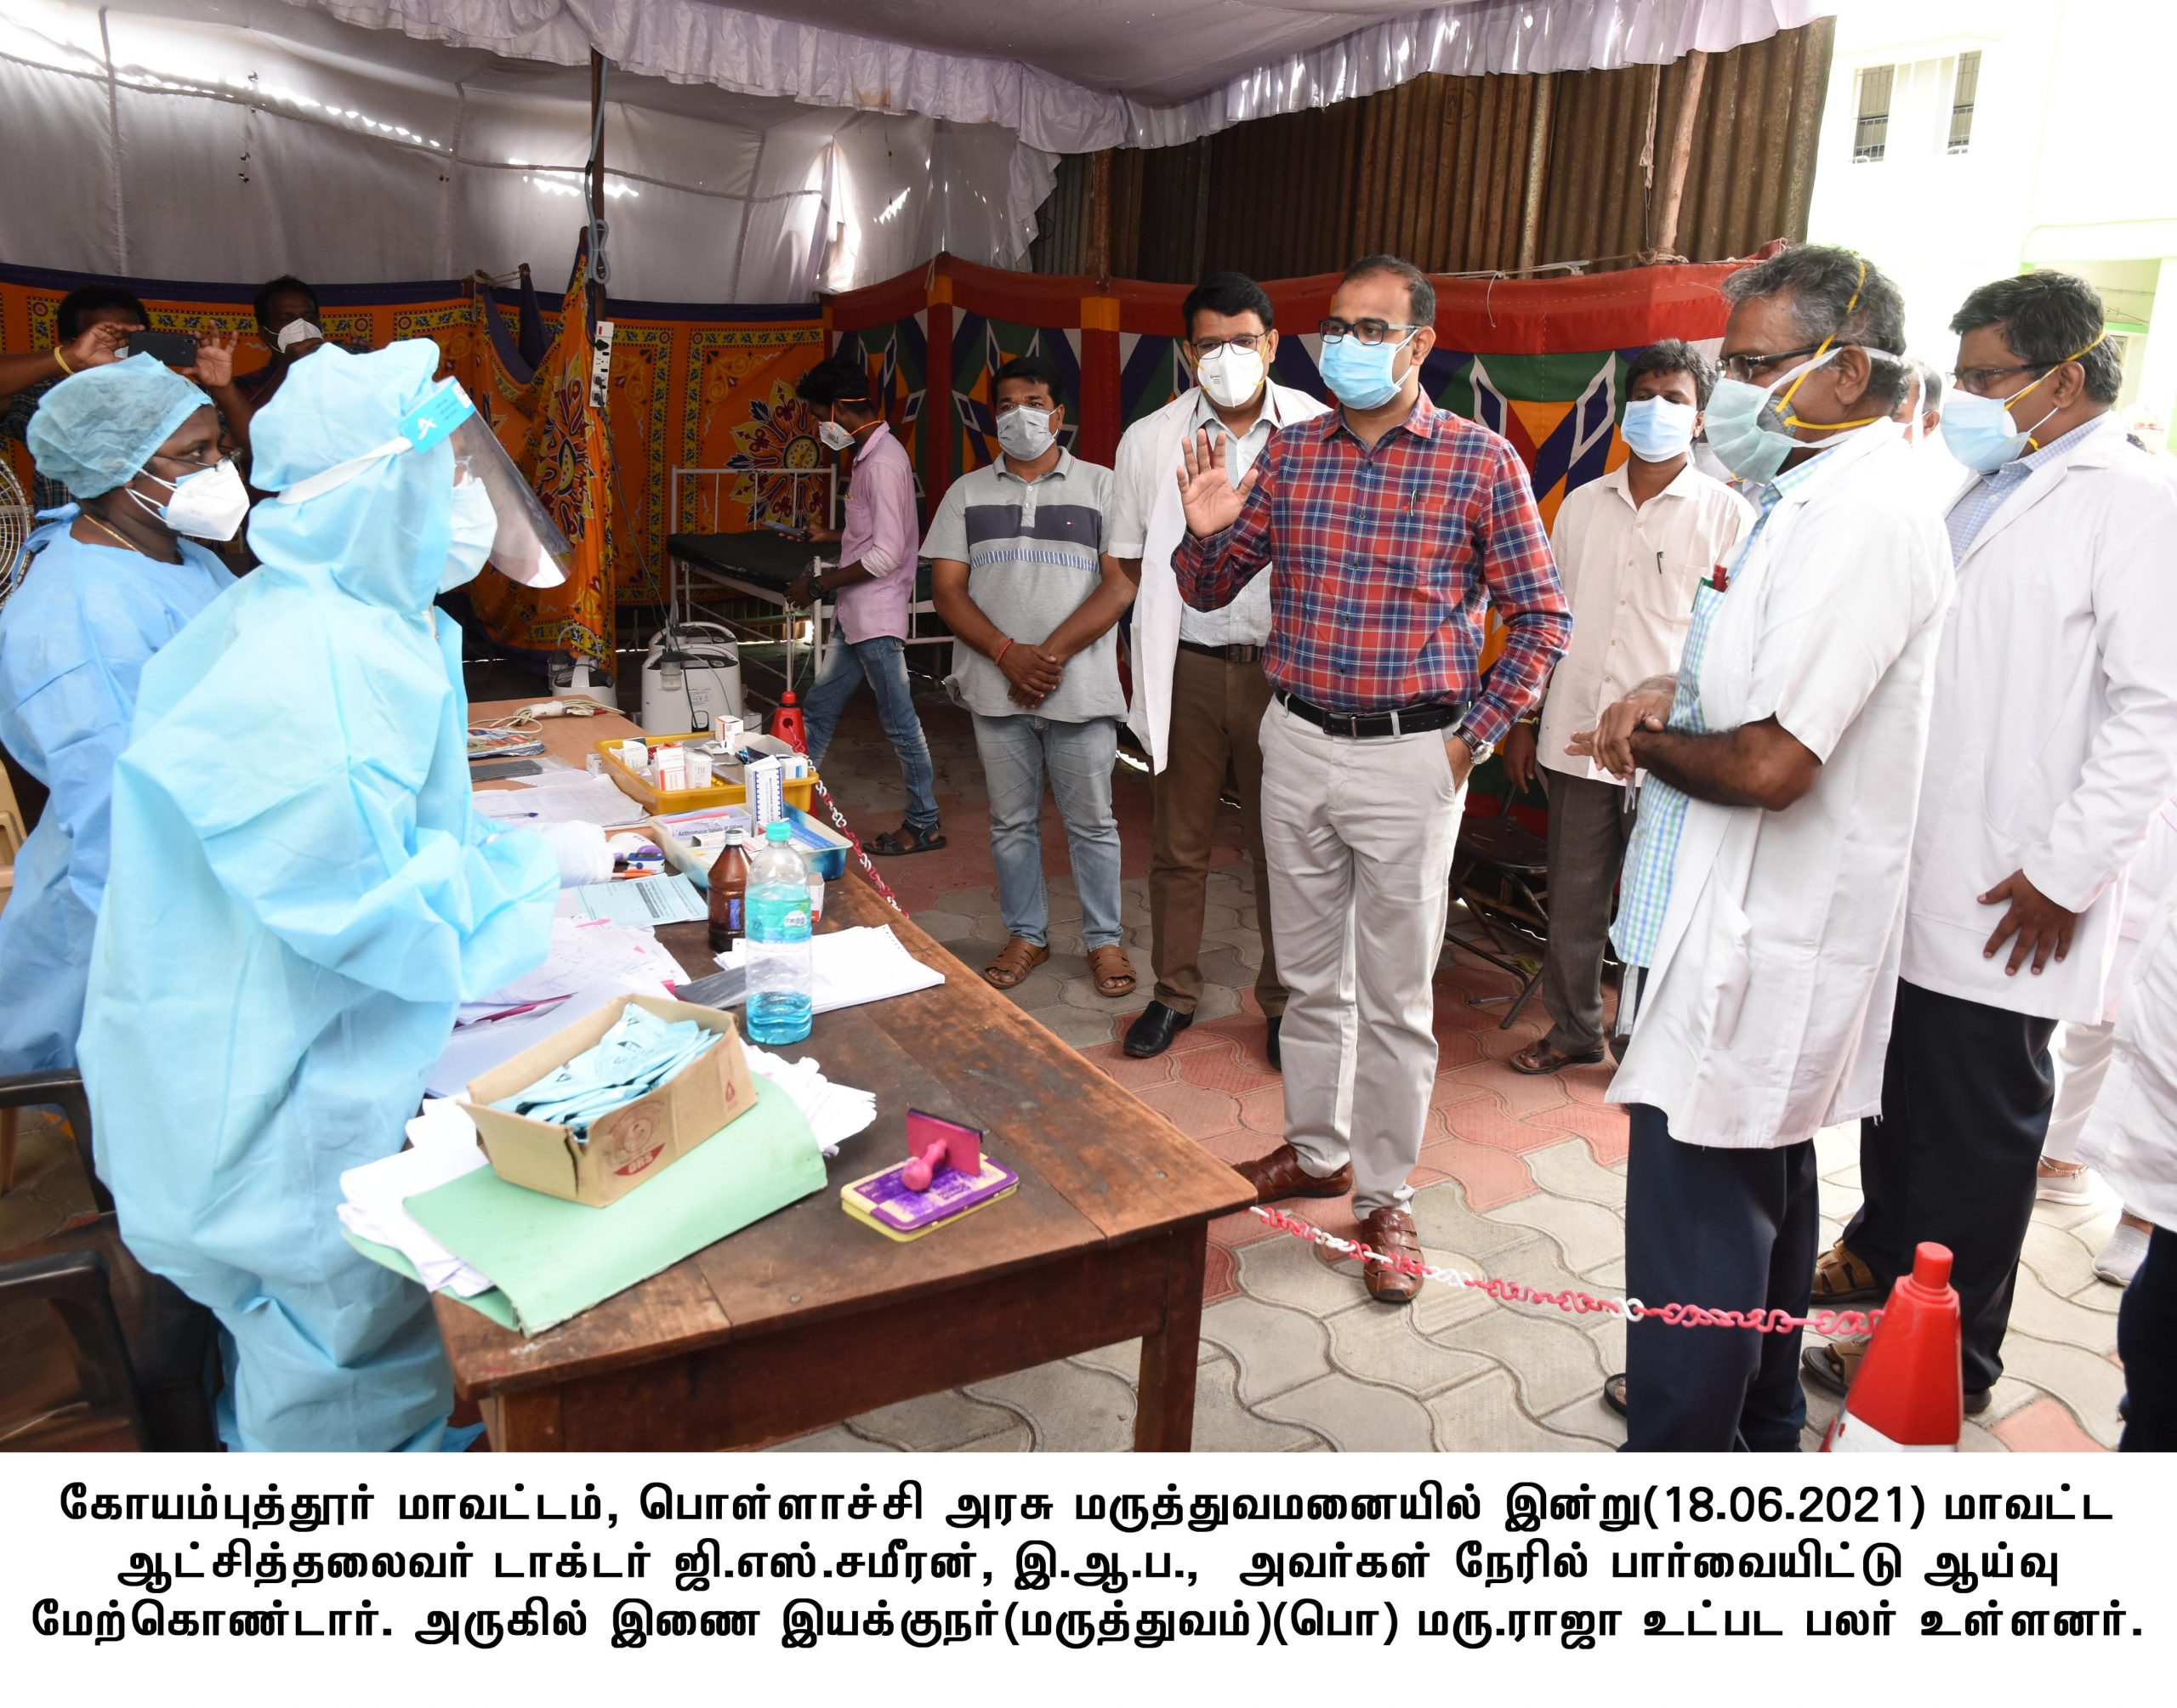 Corona Virus Prevention work Inspected by the District Collector Dr.G.S. Sameeran I.A.S. at Pollachi Govt.Hospital Pollachi on 18.06.2021.